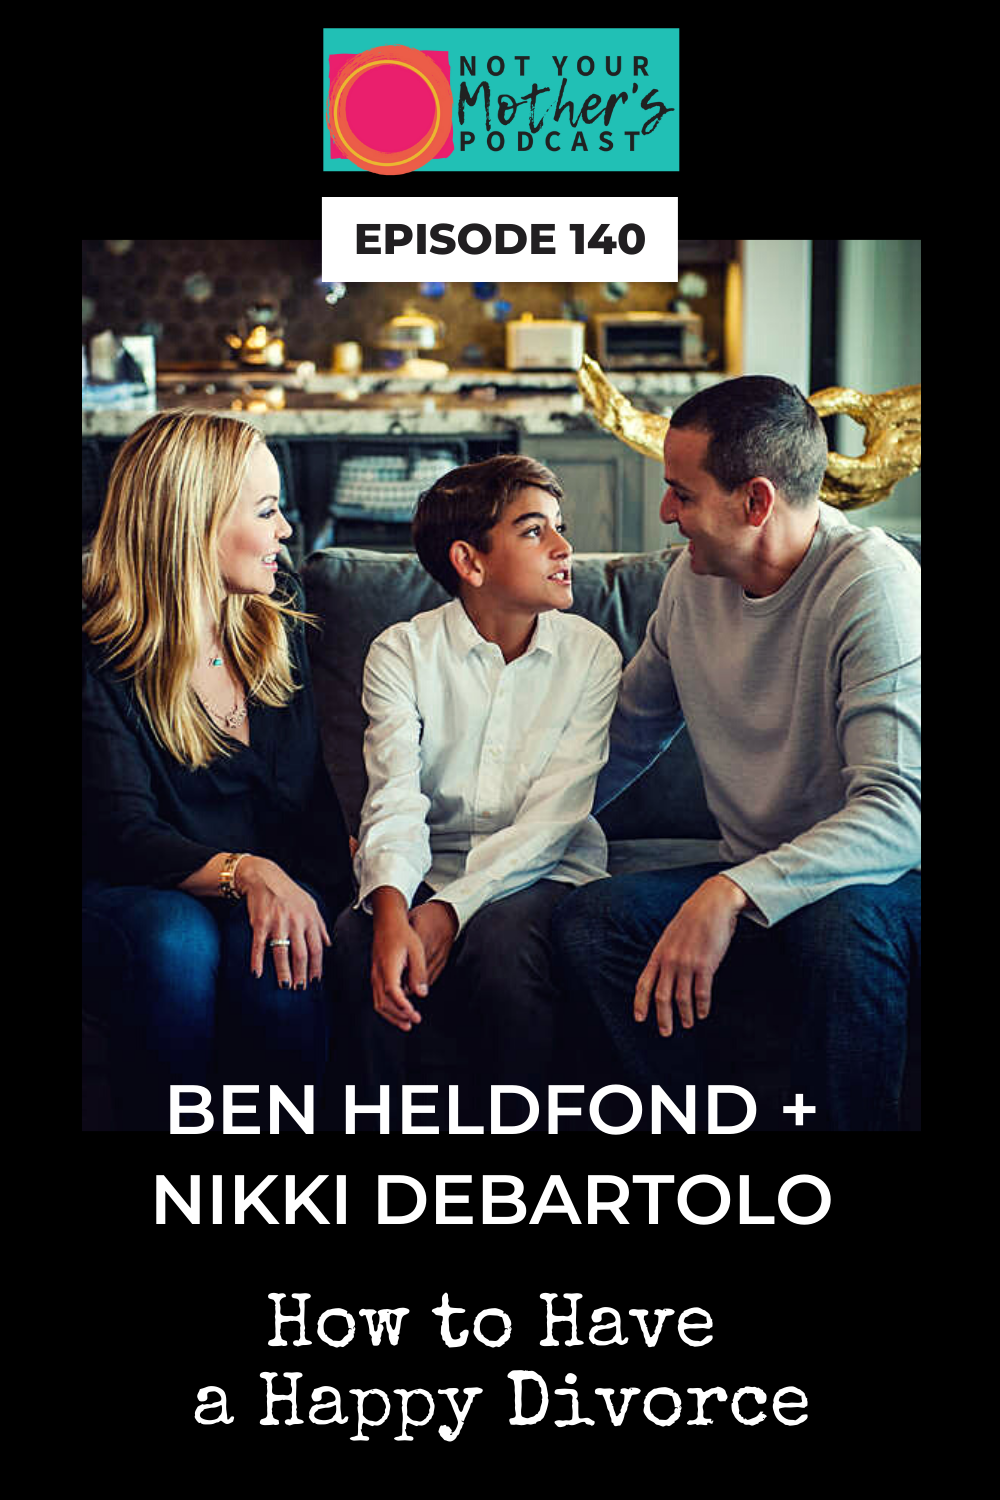 How to Have a Happy Divorce with Ben Heldfond and Nikki DeBartolo PIN